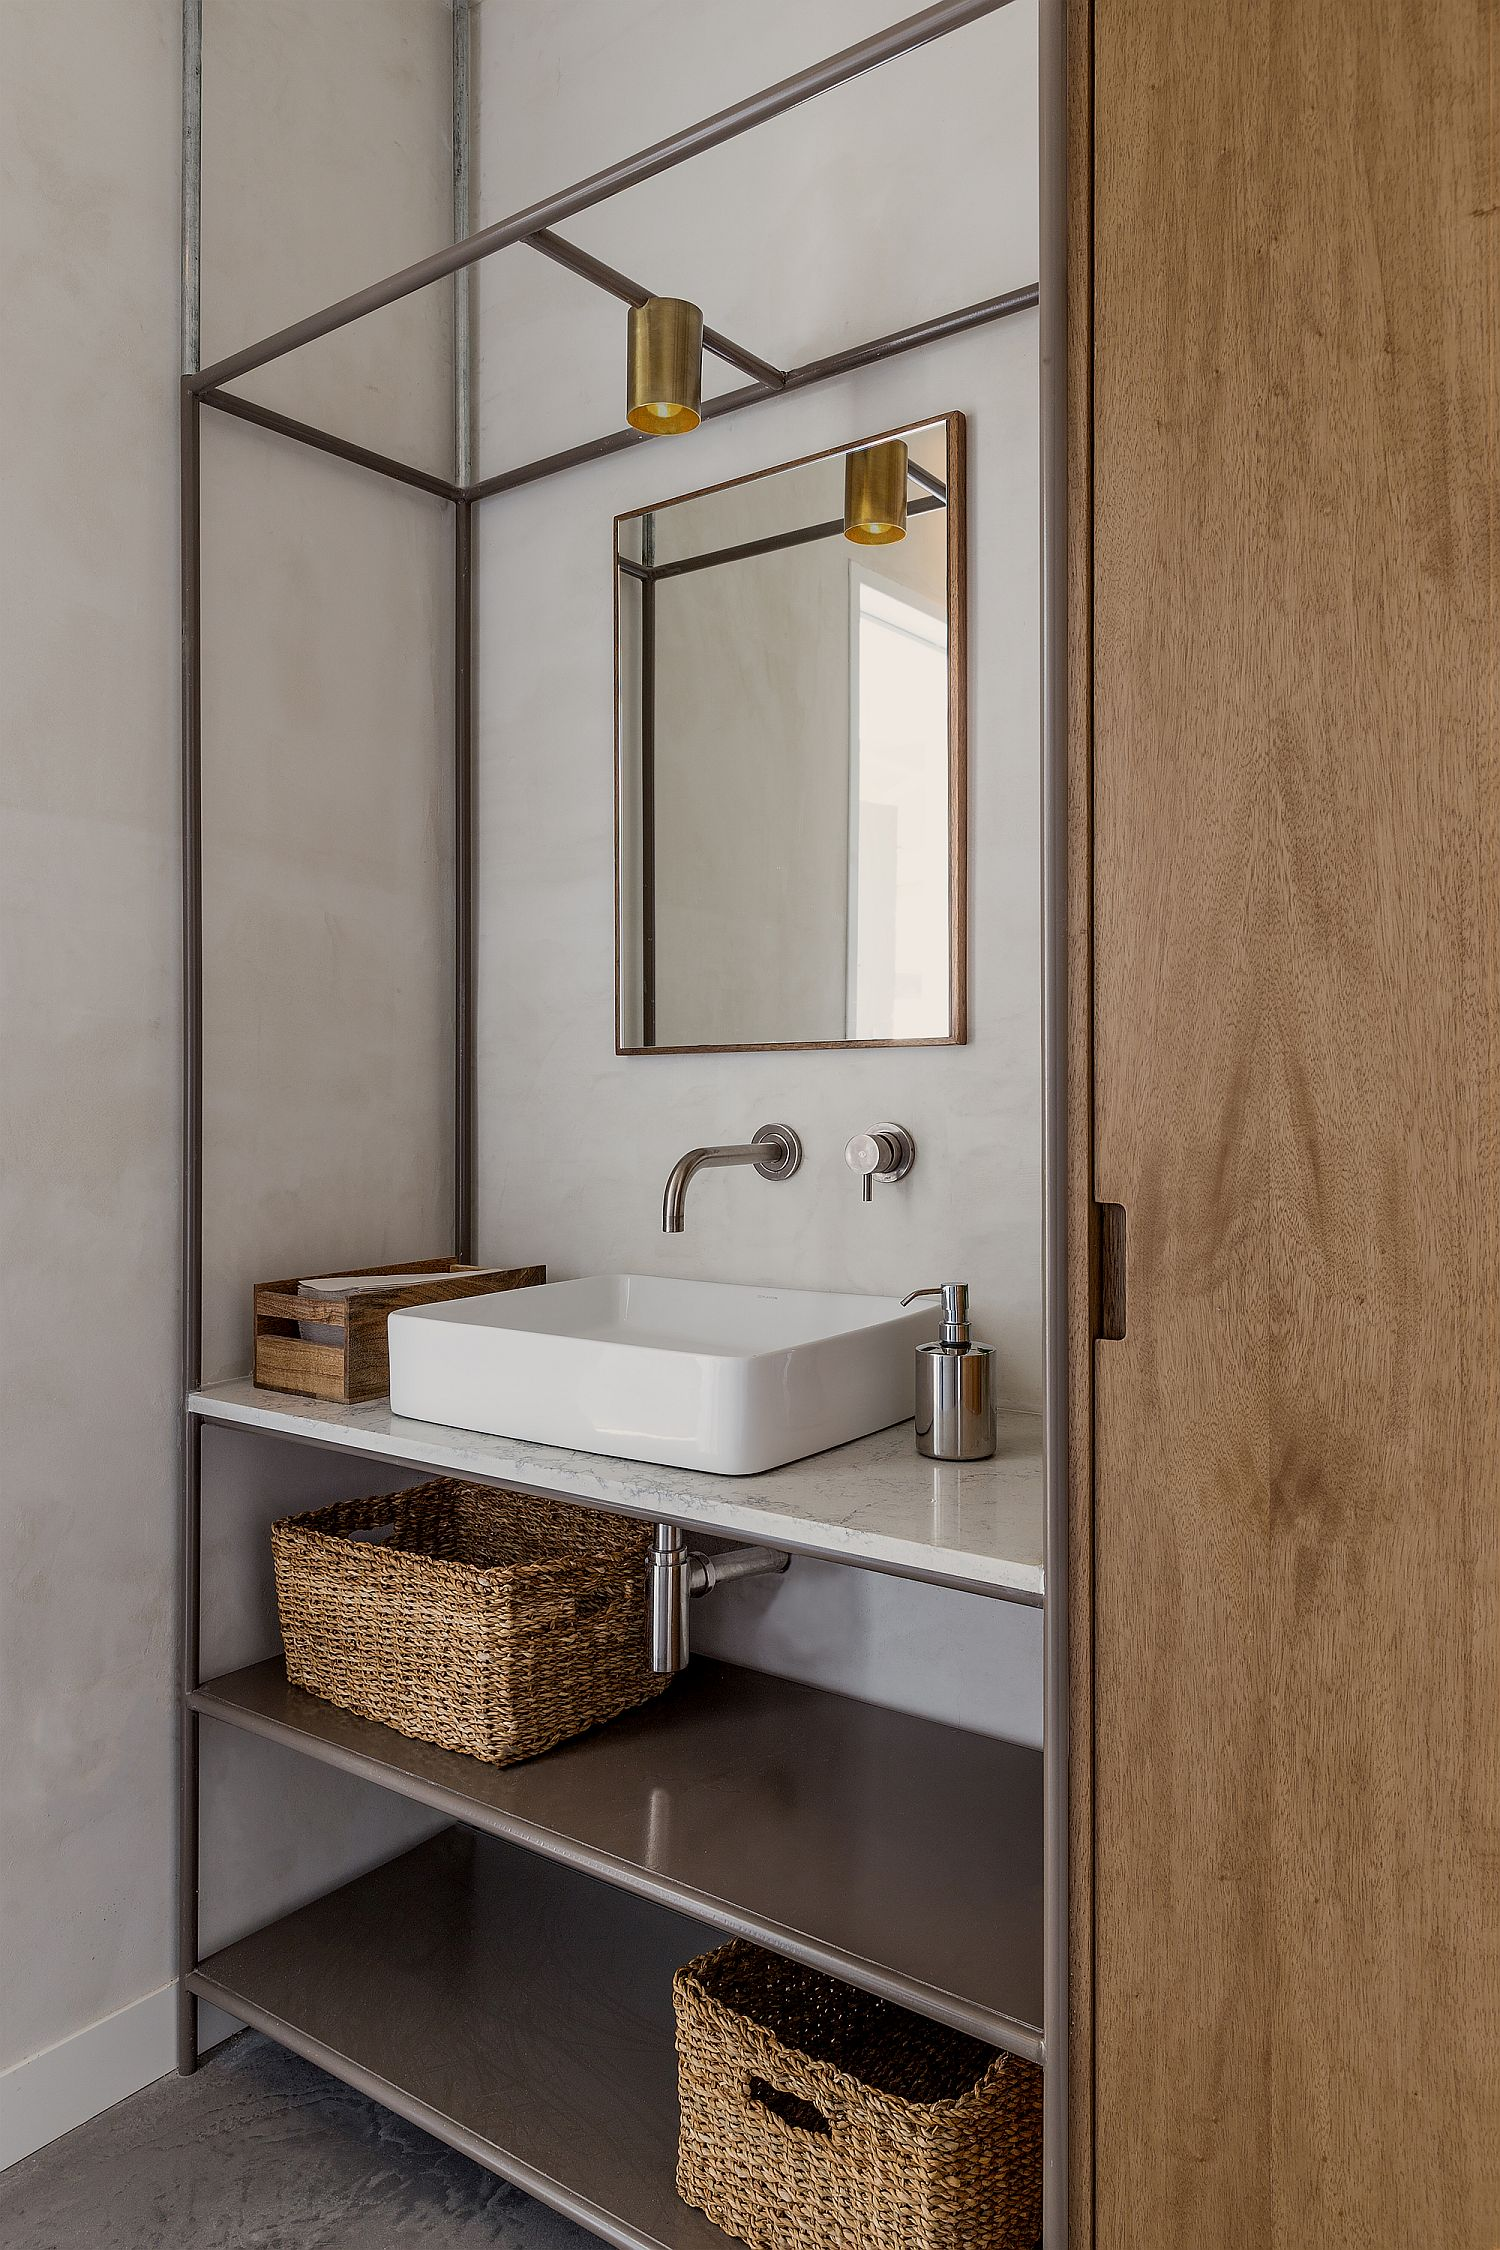 Bathroom-in-wood-and-white-with-industrial-touches